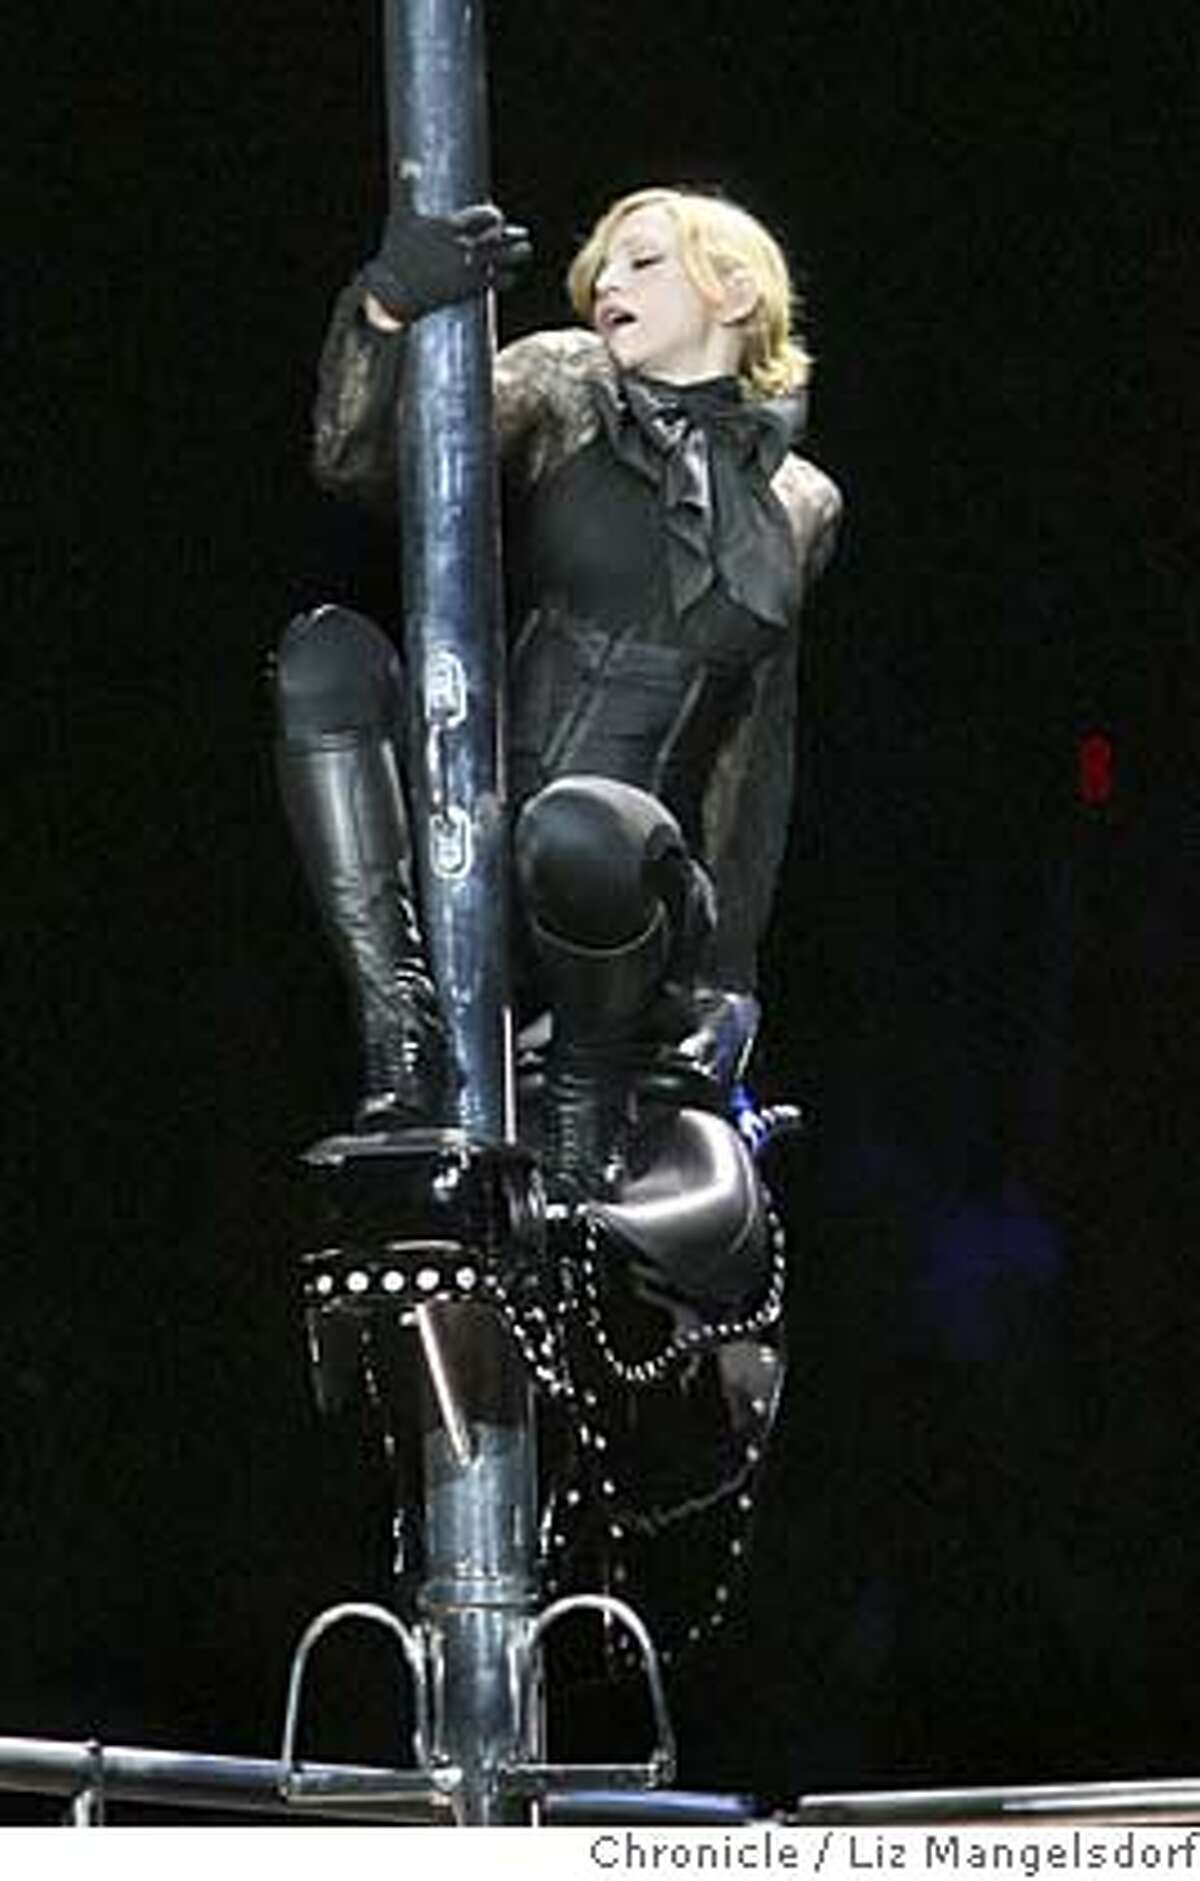 madonna008_lm.JPG Madonna performs her song